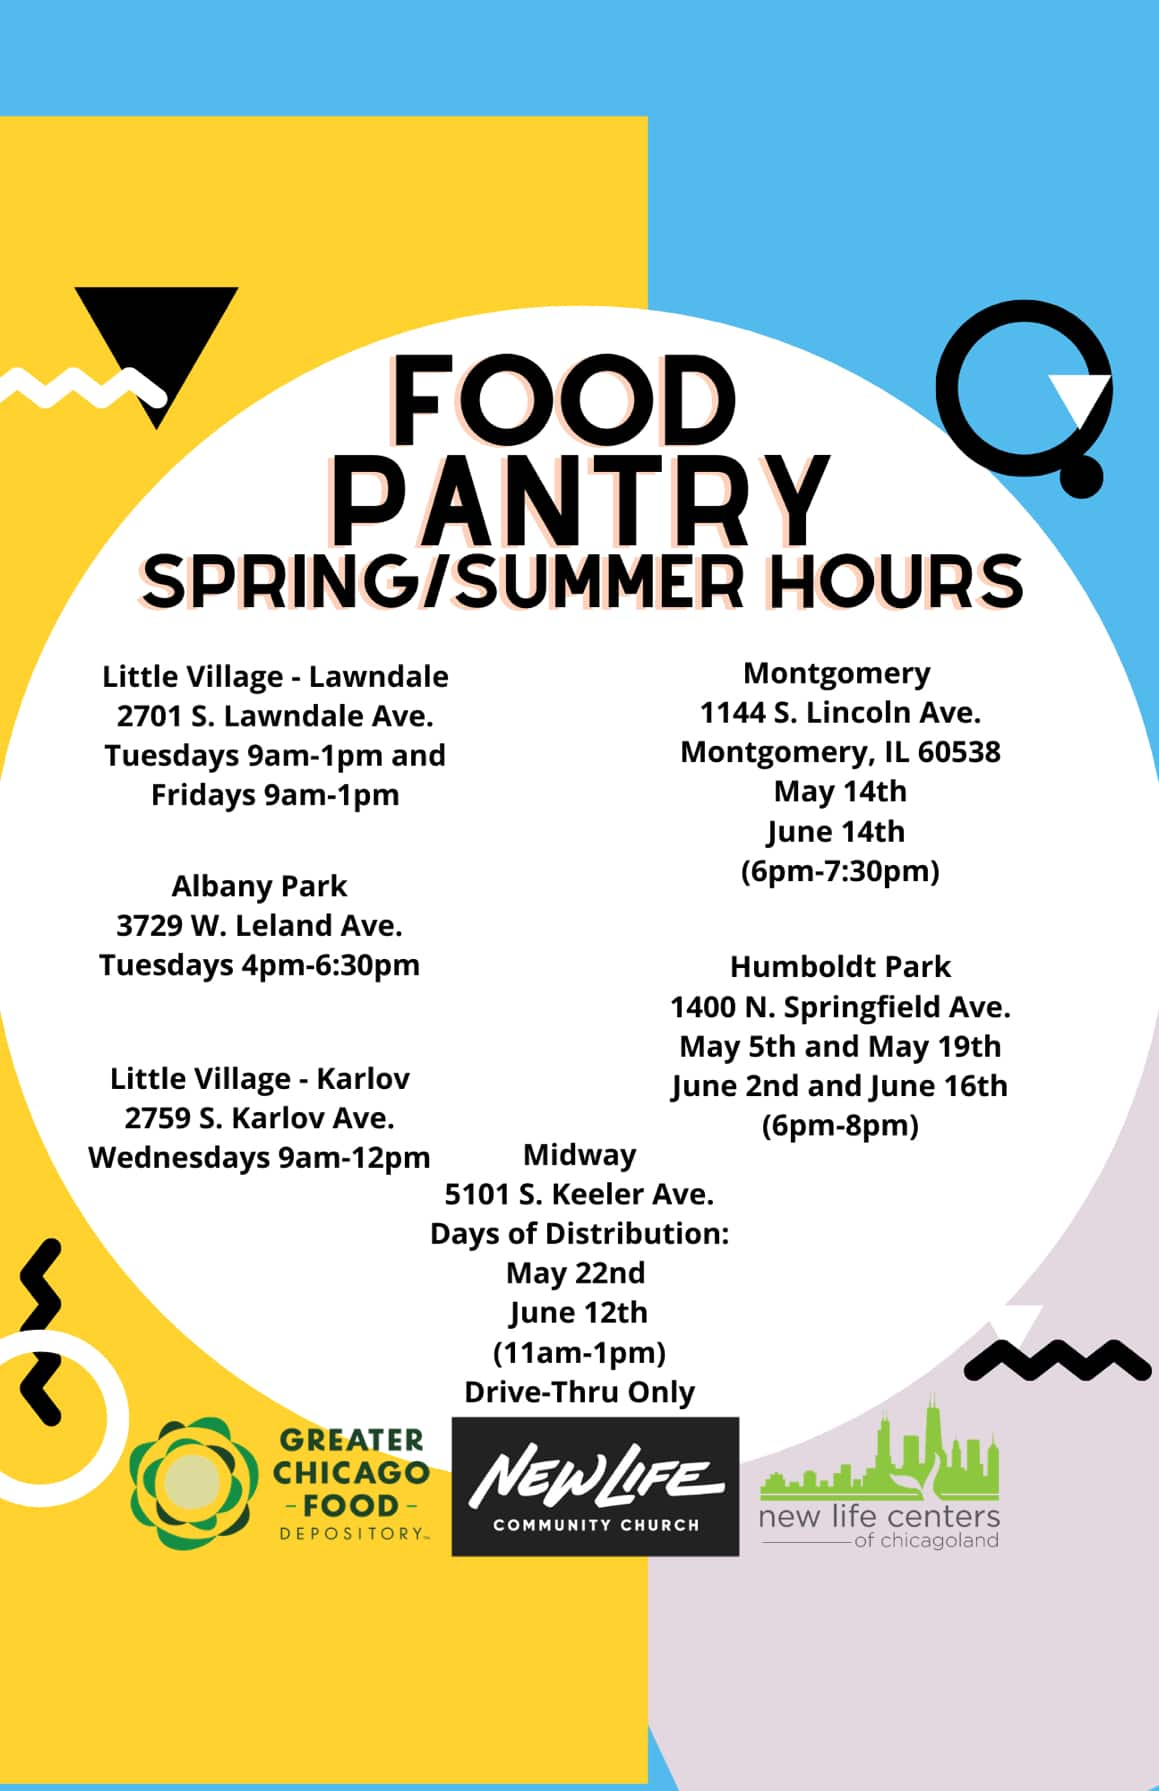 Food Pantry Spring/Summer Hours 2701 S Lawndale Tuesday and Fridays 9am-1pm, 3729 W Leland Ave. tues 4-6:30pm , 2759 S Karlov Wed 9am-12pm, 1144 S. Lincoln Ave. May 14th and June 14th 6-7:30pm, 1400 N Springfield Ave. May 5th, 19th, June 2nd, 16th 6-8pm